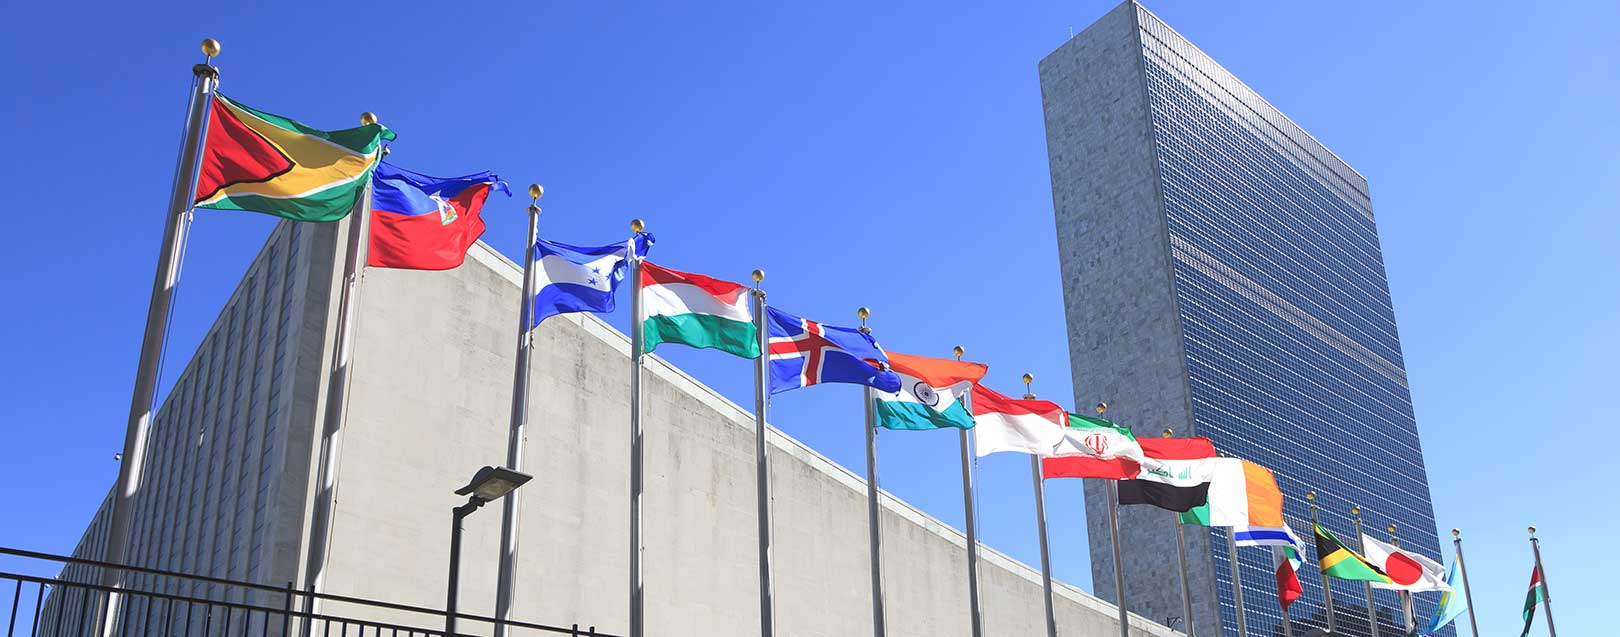 India to clock 7.1% GDP this year, 7.5% in 2018: UN report